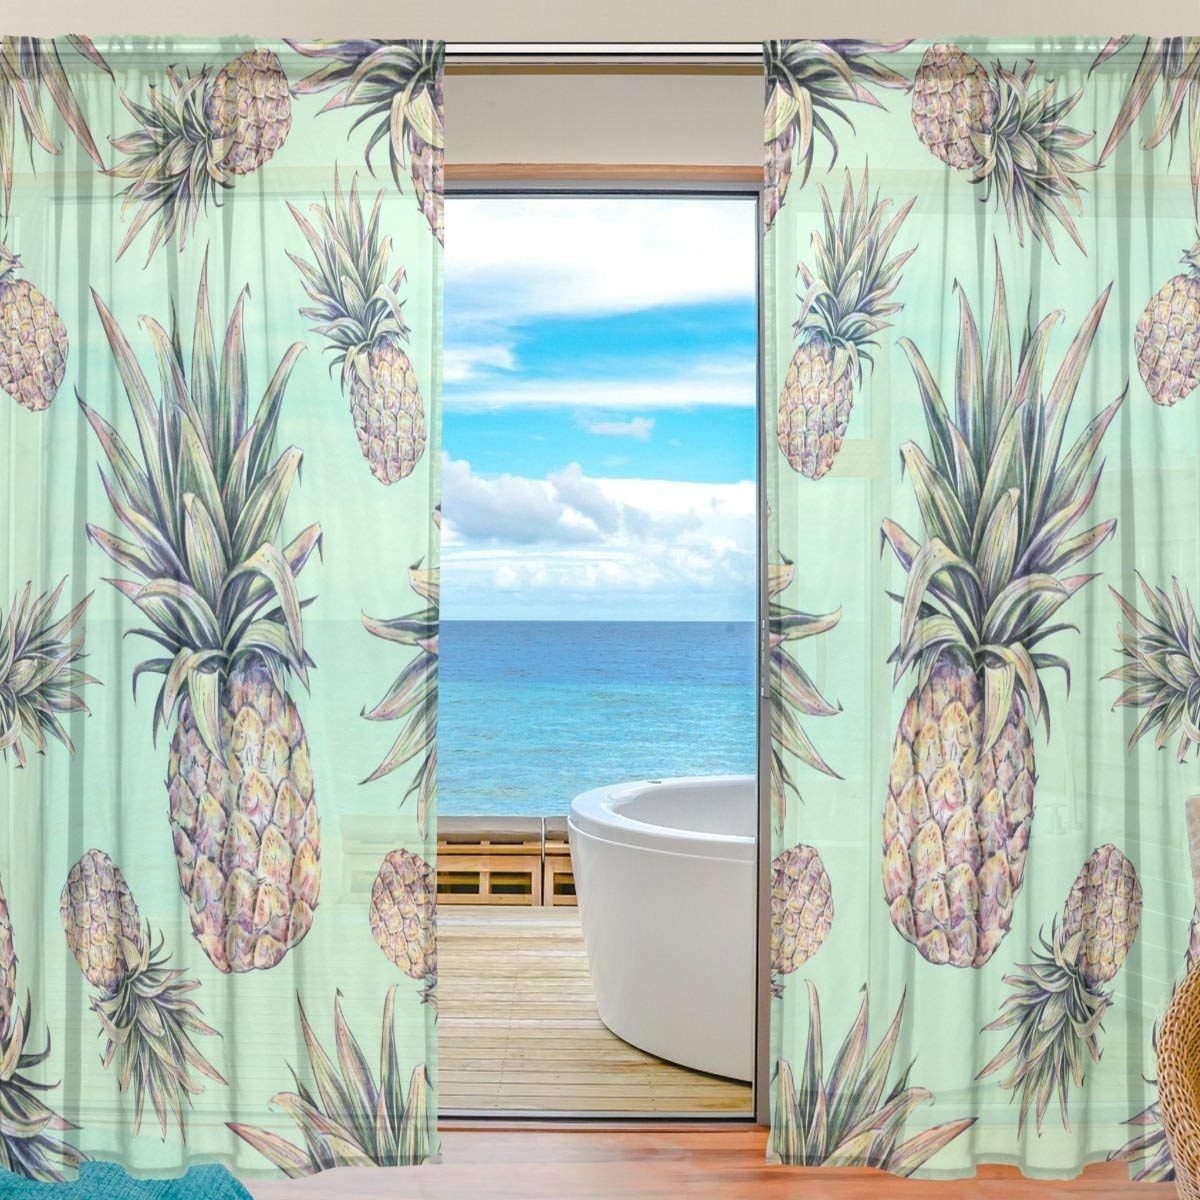 Cheap Light Green Sheer Curtains Find Light Green Sheer Curtains Deals On Line At Alibaba Com